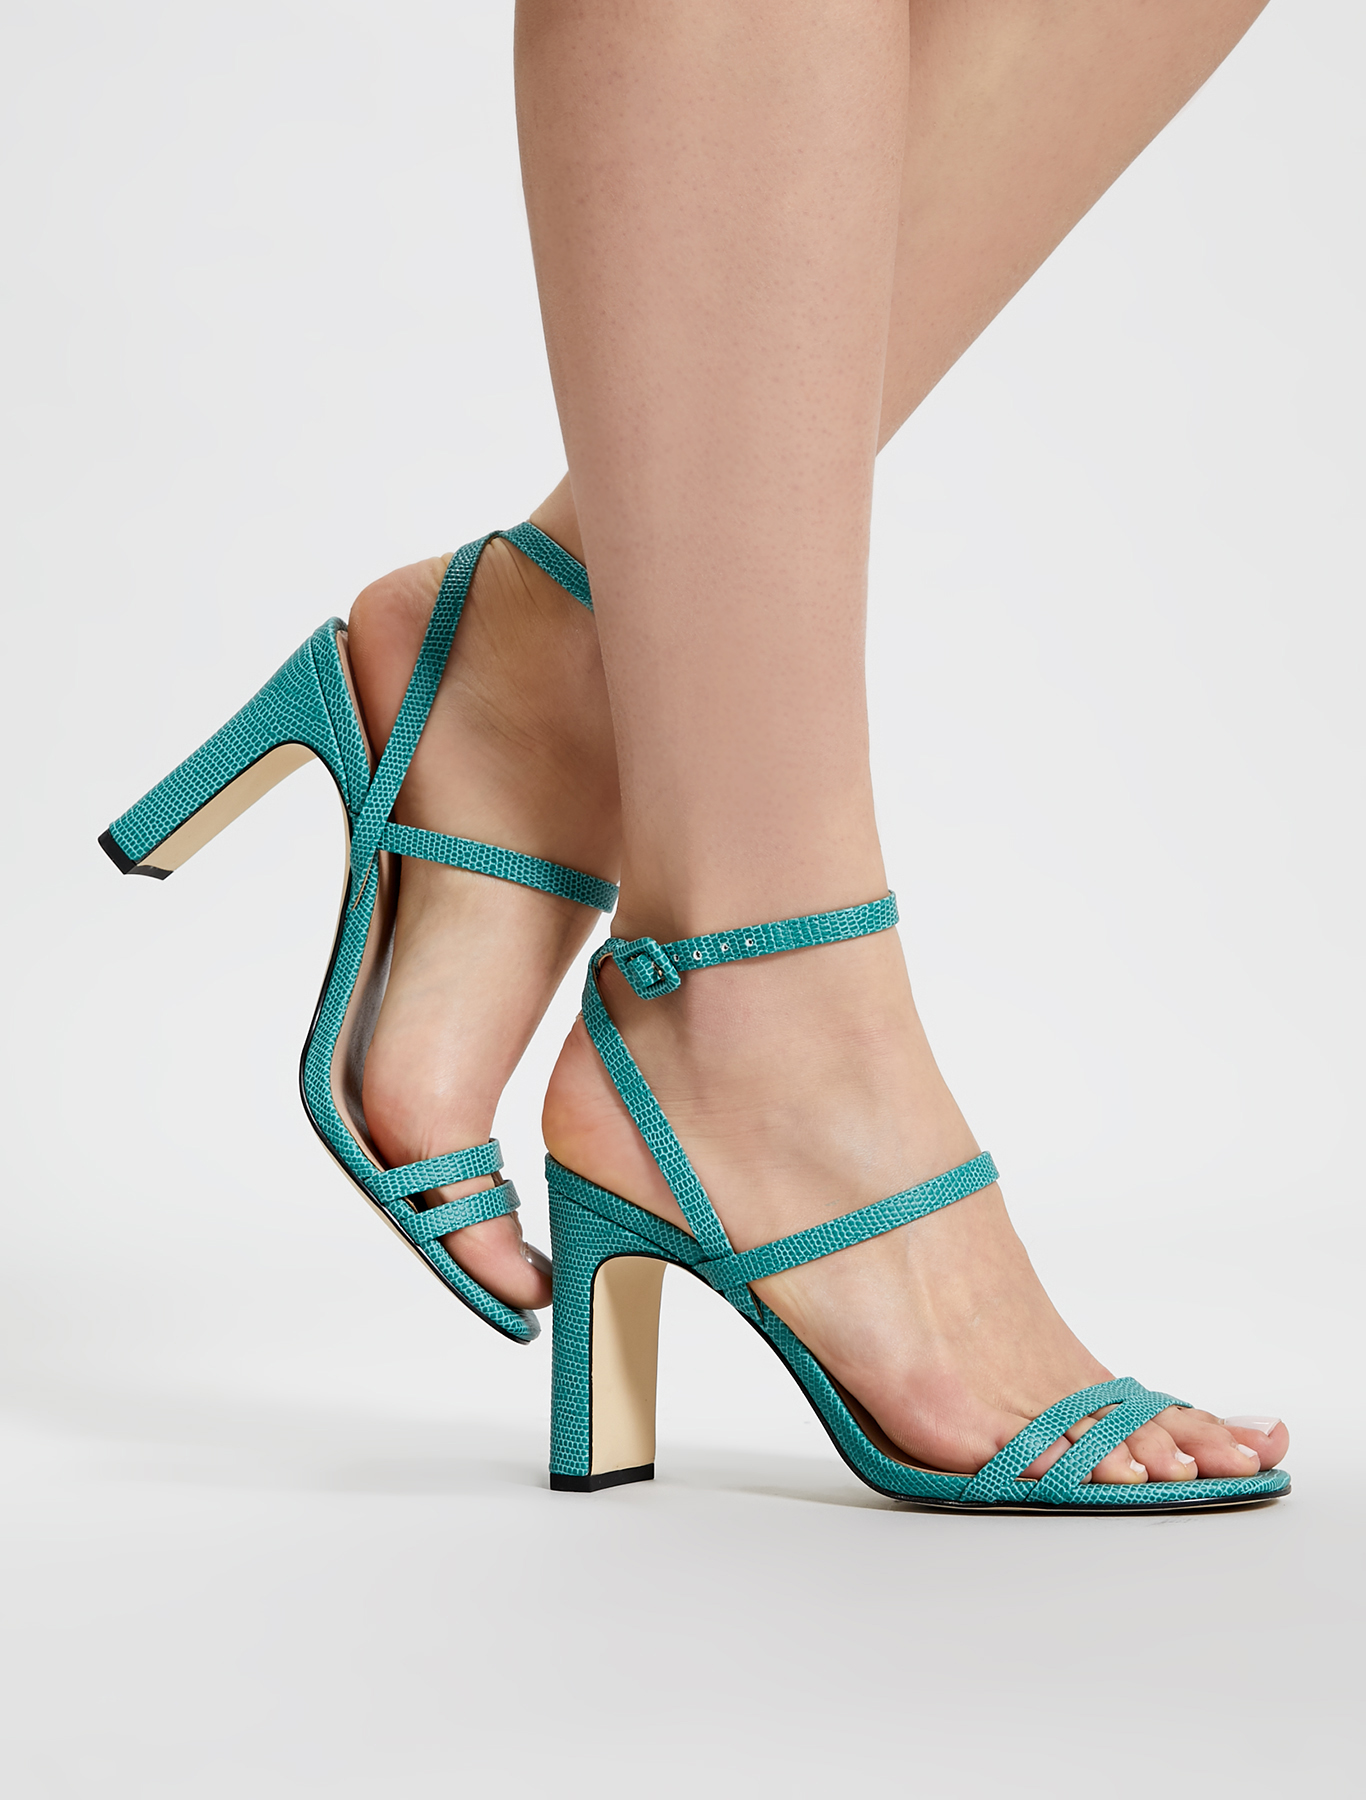 Lizard-print high-heeled sandals - green - pennyblack